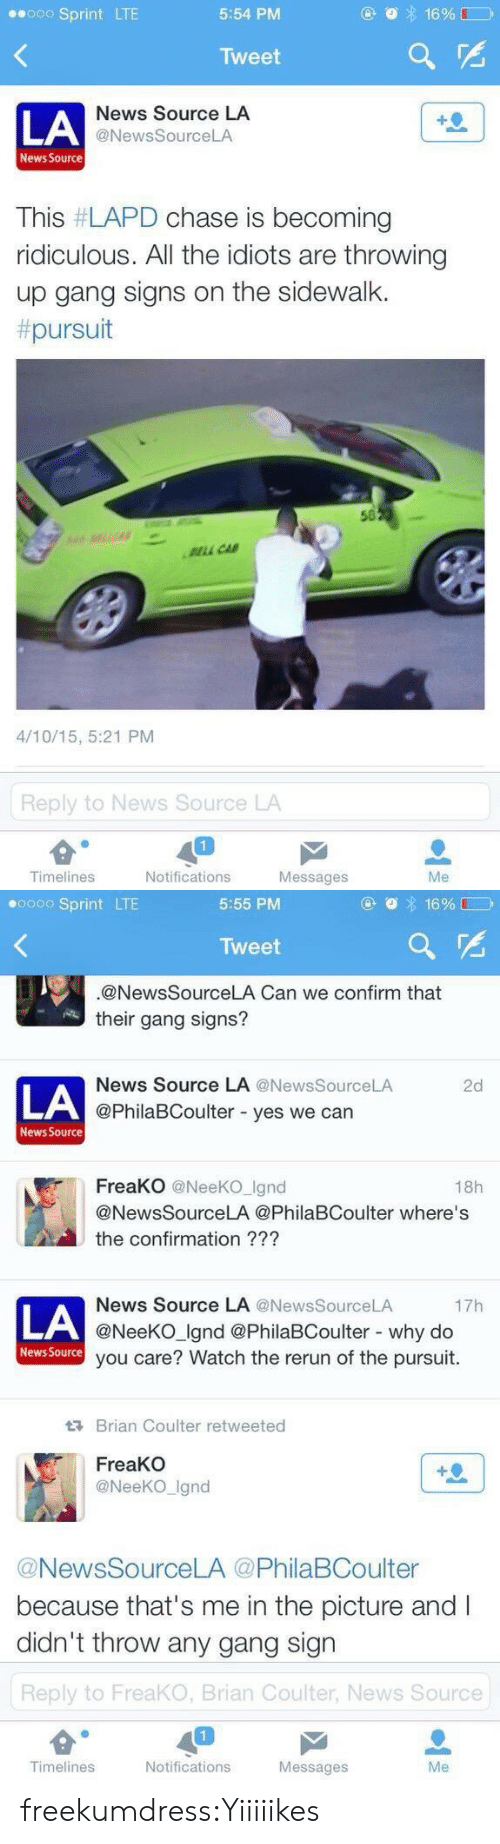 Gang Sign: Sprint LTE  5:54 PM  Tweet  LA  News Source LA  @NewsSourceLA  News Source  This #LAPD chase is becoming  ridiculous. All the idiots are throwing  up gang signs on the sidewalk.  pursuit  50  LL CA  4/10/15, 5:21 PM  Reply to News Source LA  Timelines  Notifications  Messages  Me   0 Sprint LTE  5:55 PM  Tweet  @NewsSourceLA Can we confirm that  their gang signs?  News Source LA @News SourceLA  2d  LA  @PhilaBCoulter - yes we can  News Source  FreaKO @NeeKO Ignd  18h  @NewsSourceLA @PhilaBCoulter where's  the confirmation ???  News Source LA @NewsSourceLA  @NeeKO Ignd @PhilaBCoulter - why do  you care? Watch the rerun of the pursuit.  17h  LA  News Source  Brian Coulter retweeted  FreaKO  @NeeKO_Ignd  @NewsSourceLA @PhilaBCoulter  because that's me in the picture and I  didn't throw any gang sign  Reply to FreaKO, Brian Coulter, News Source  Timelines  Notifications  Messages  Me freekumdress:Yiiiiikes